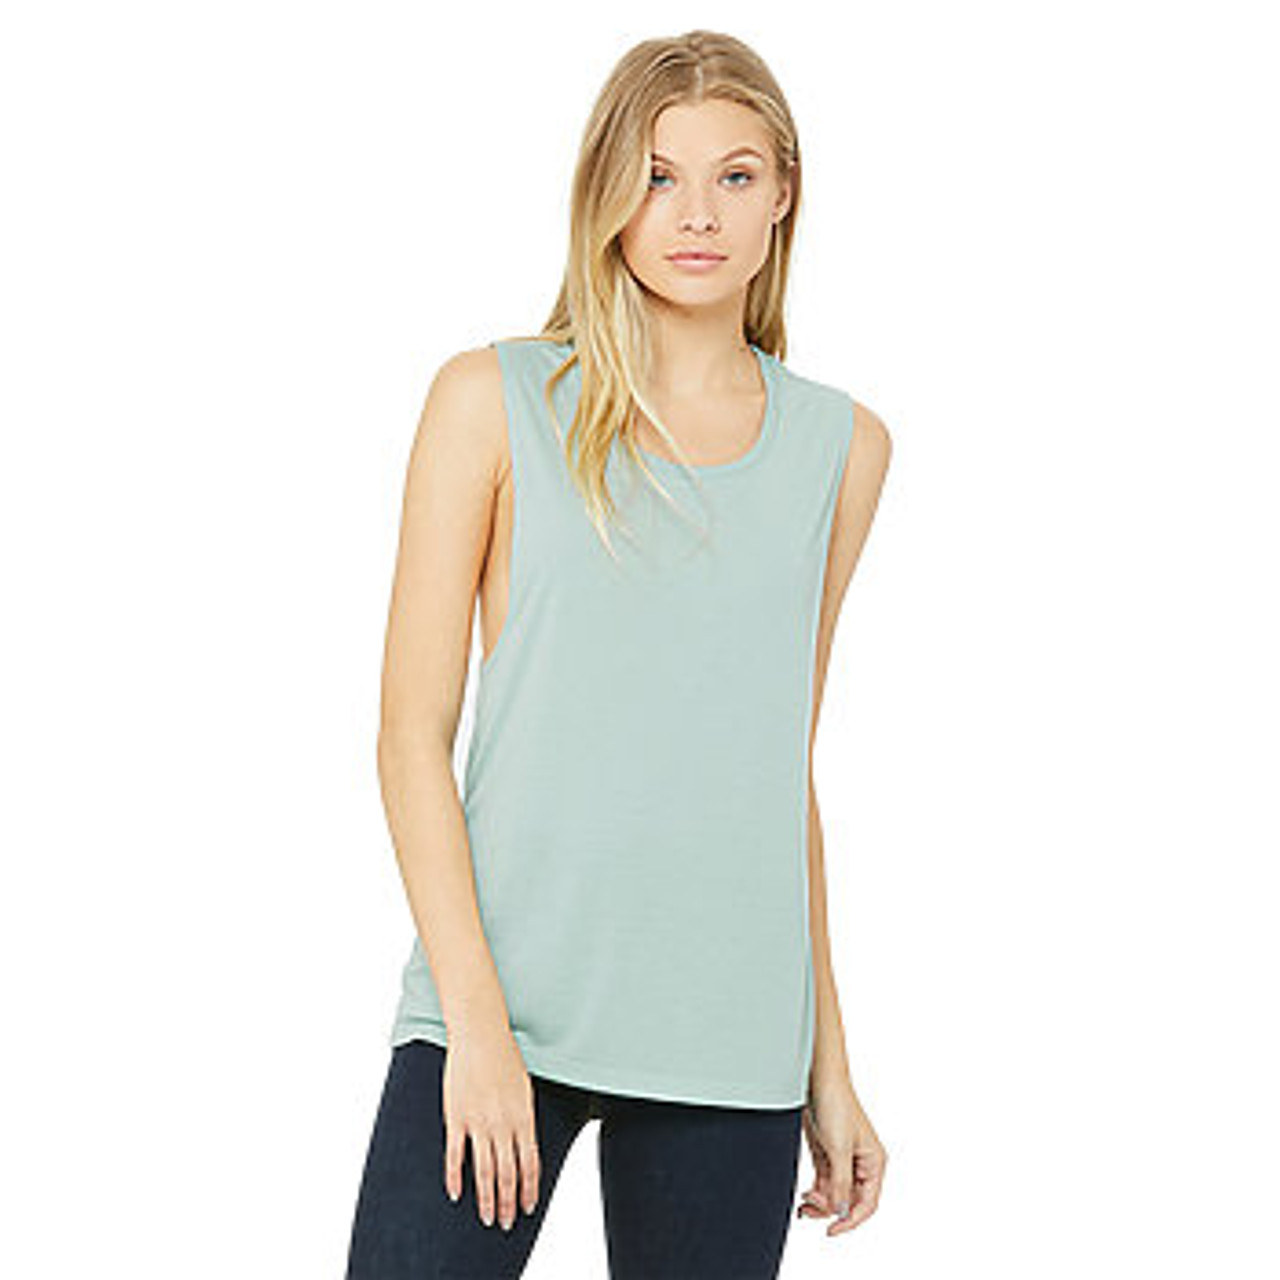 Canvas Women/'s Flowy Scoop Muscle Tank Top Shirt 8803 up to 2XL Bella